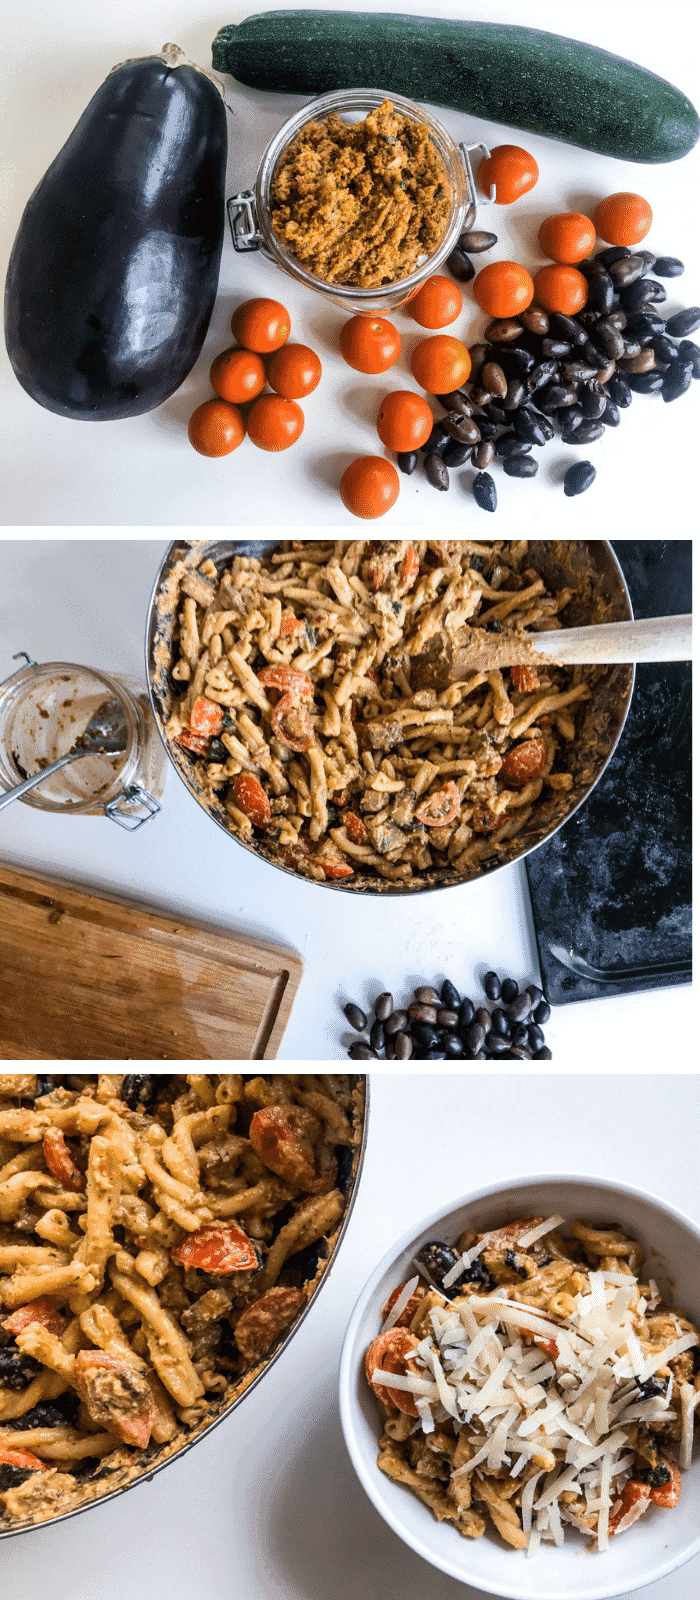 Red Pesto Pasta with Roasted Veggies - Make your own pesto for this red pesto pasta with roasted veggies - and while you're at it, maybe make some extra, it's SO good! Quick and easy to make this red pesto will make you never want to buy the pre-made kind again. #alwaysusebutter #redpesto #pesto #recipe #pestorecipe #redpestorecipe #pestopasta